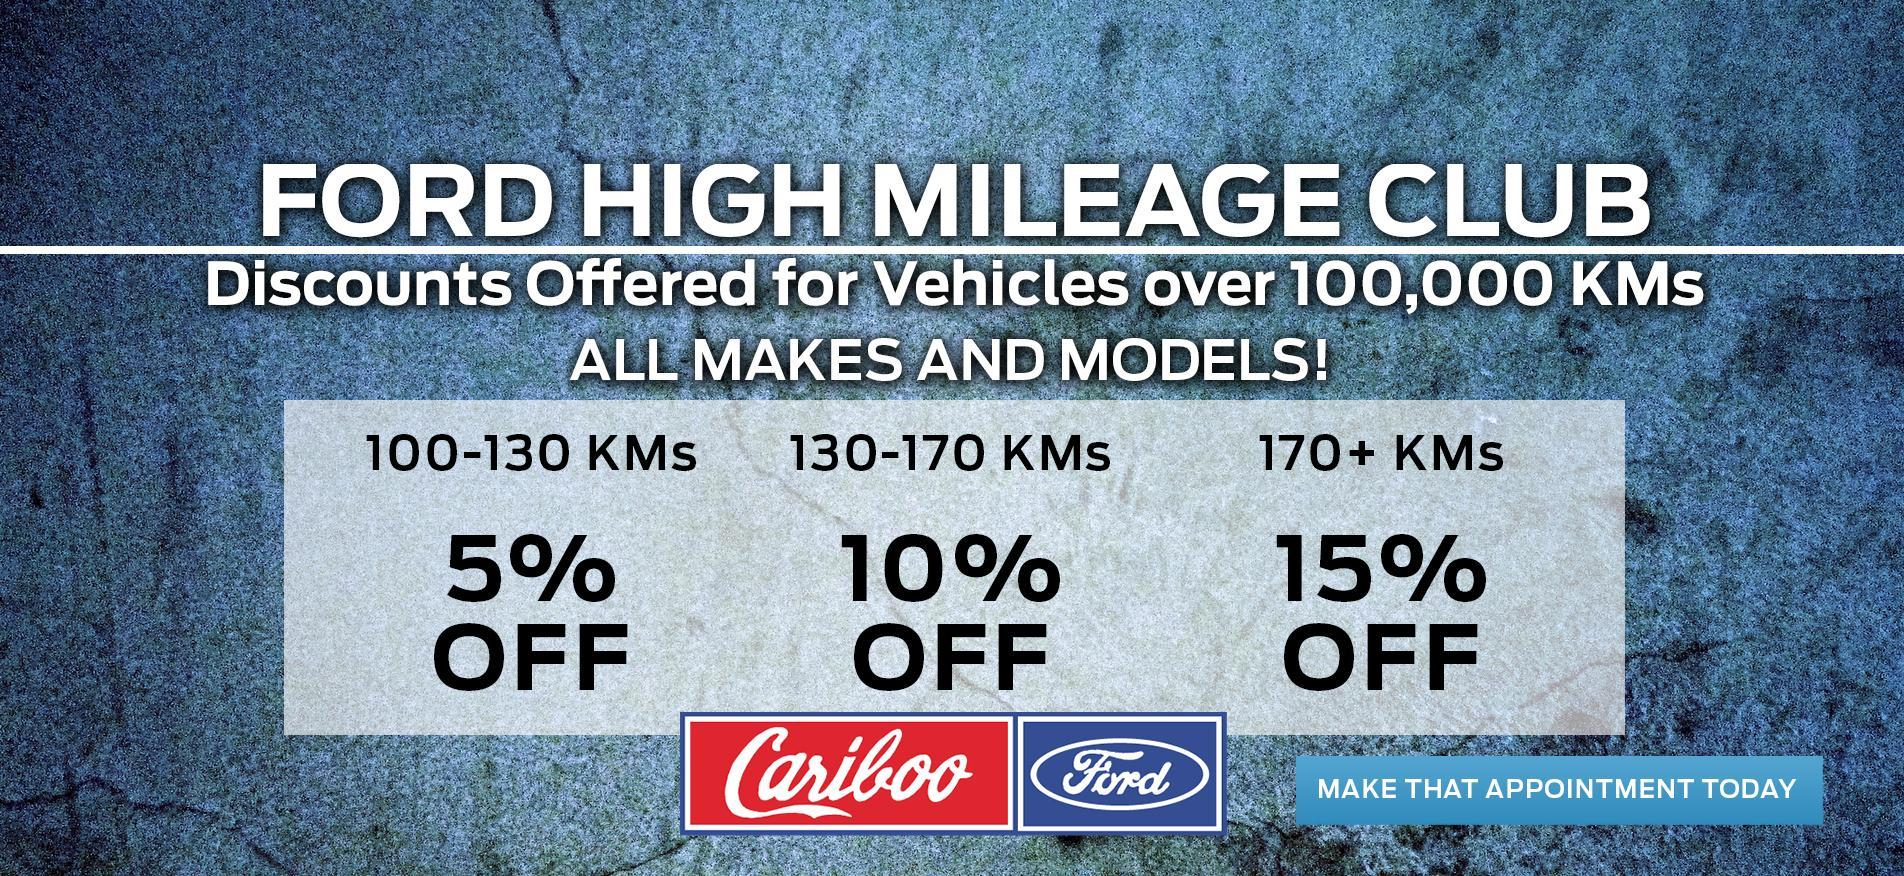 Service and Repairs - High Mileage Club